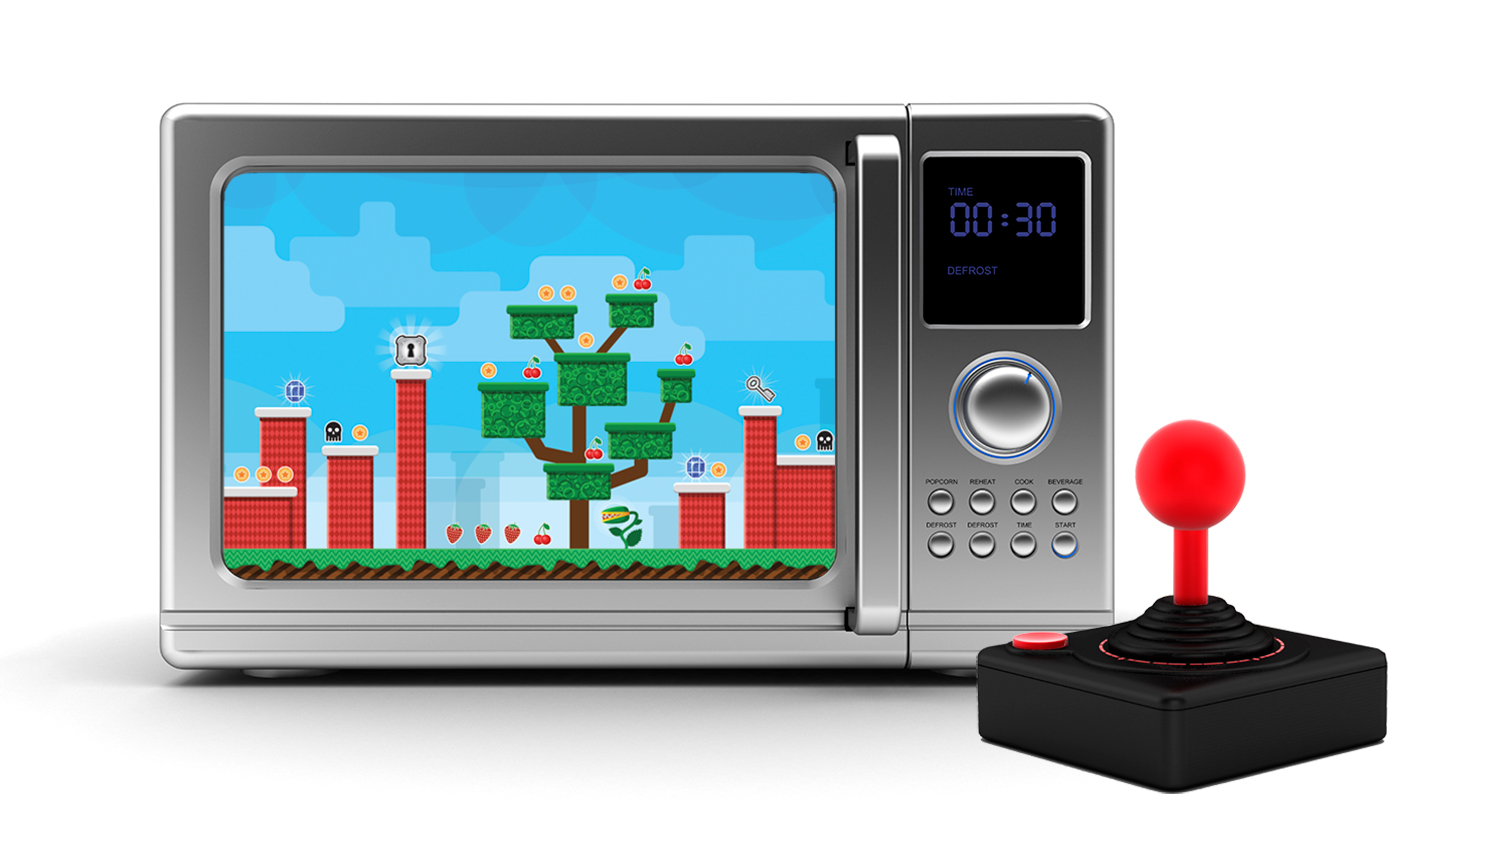 This Guy Turned a Microwave Into a Video Game Console